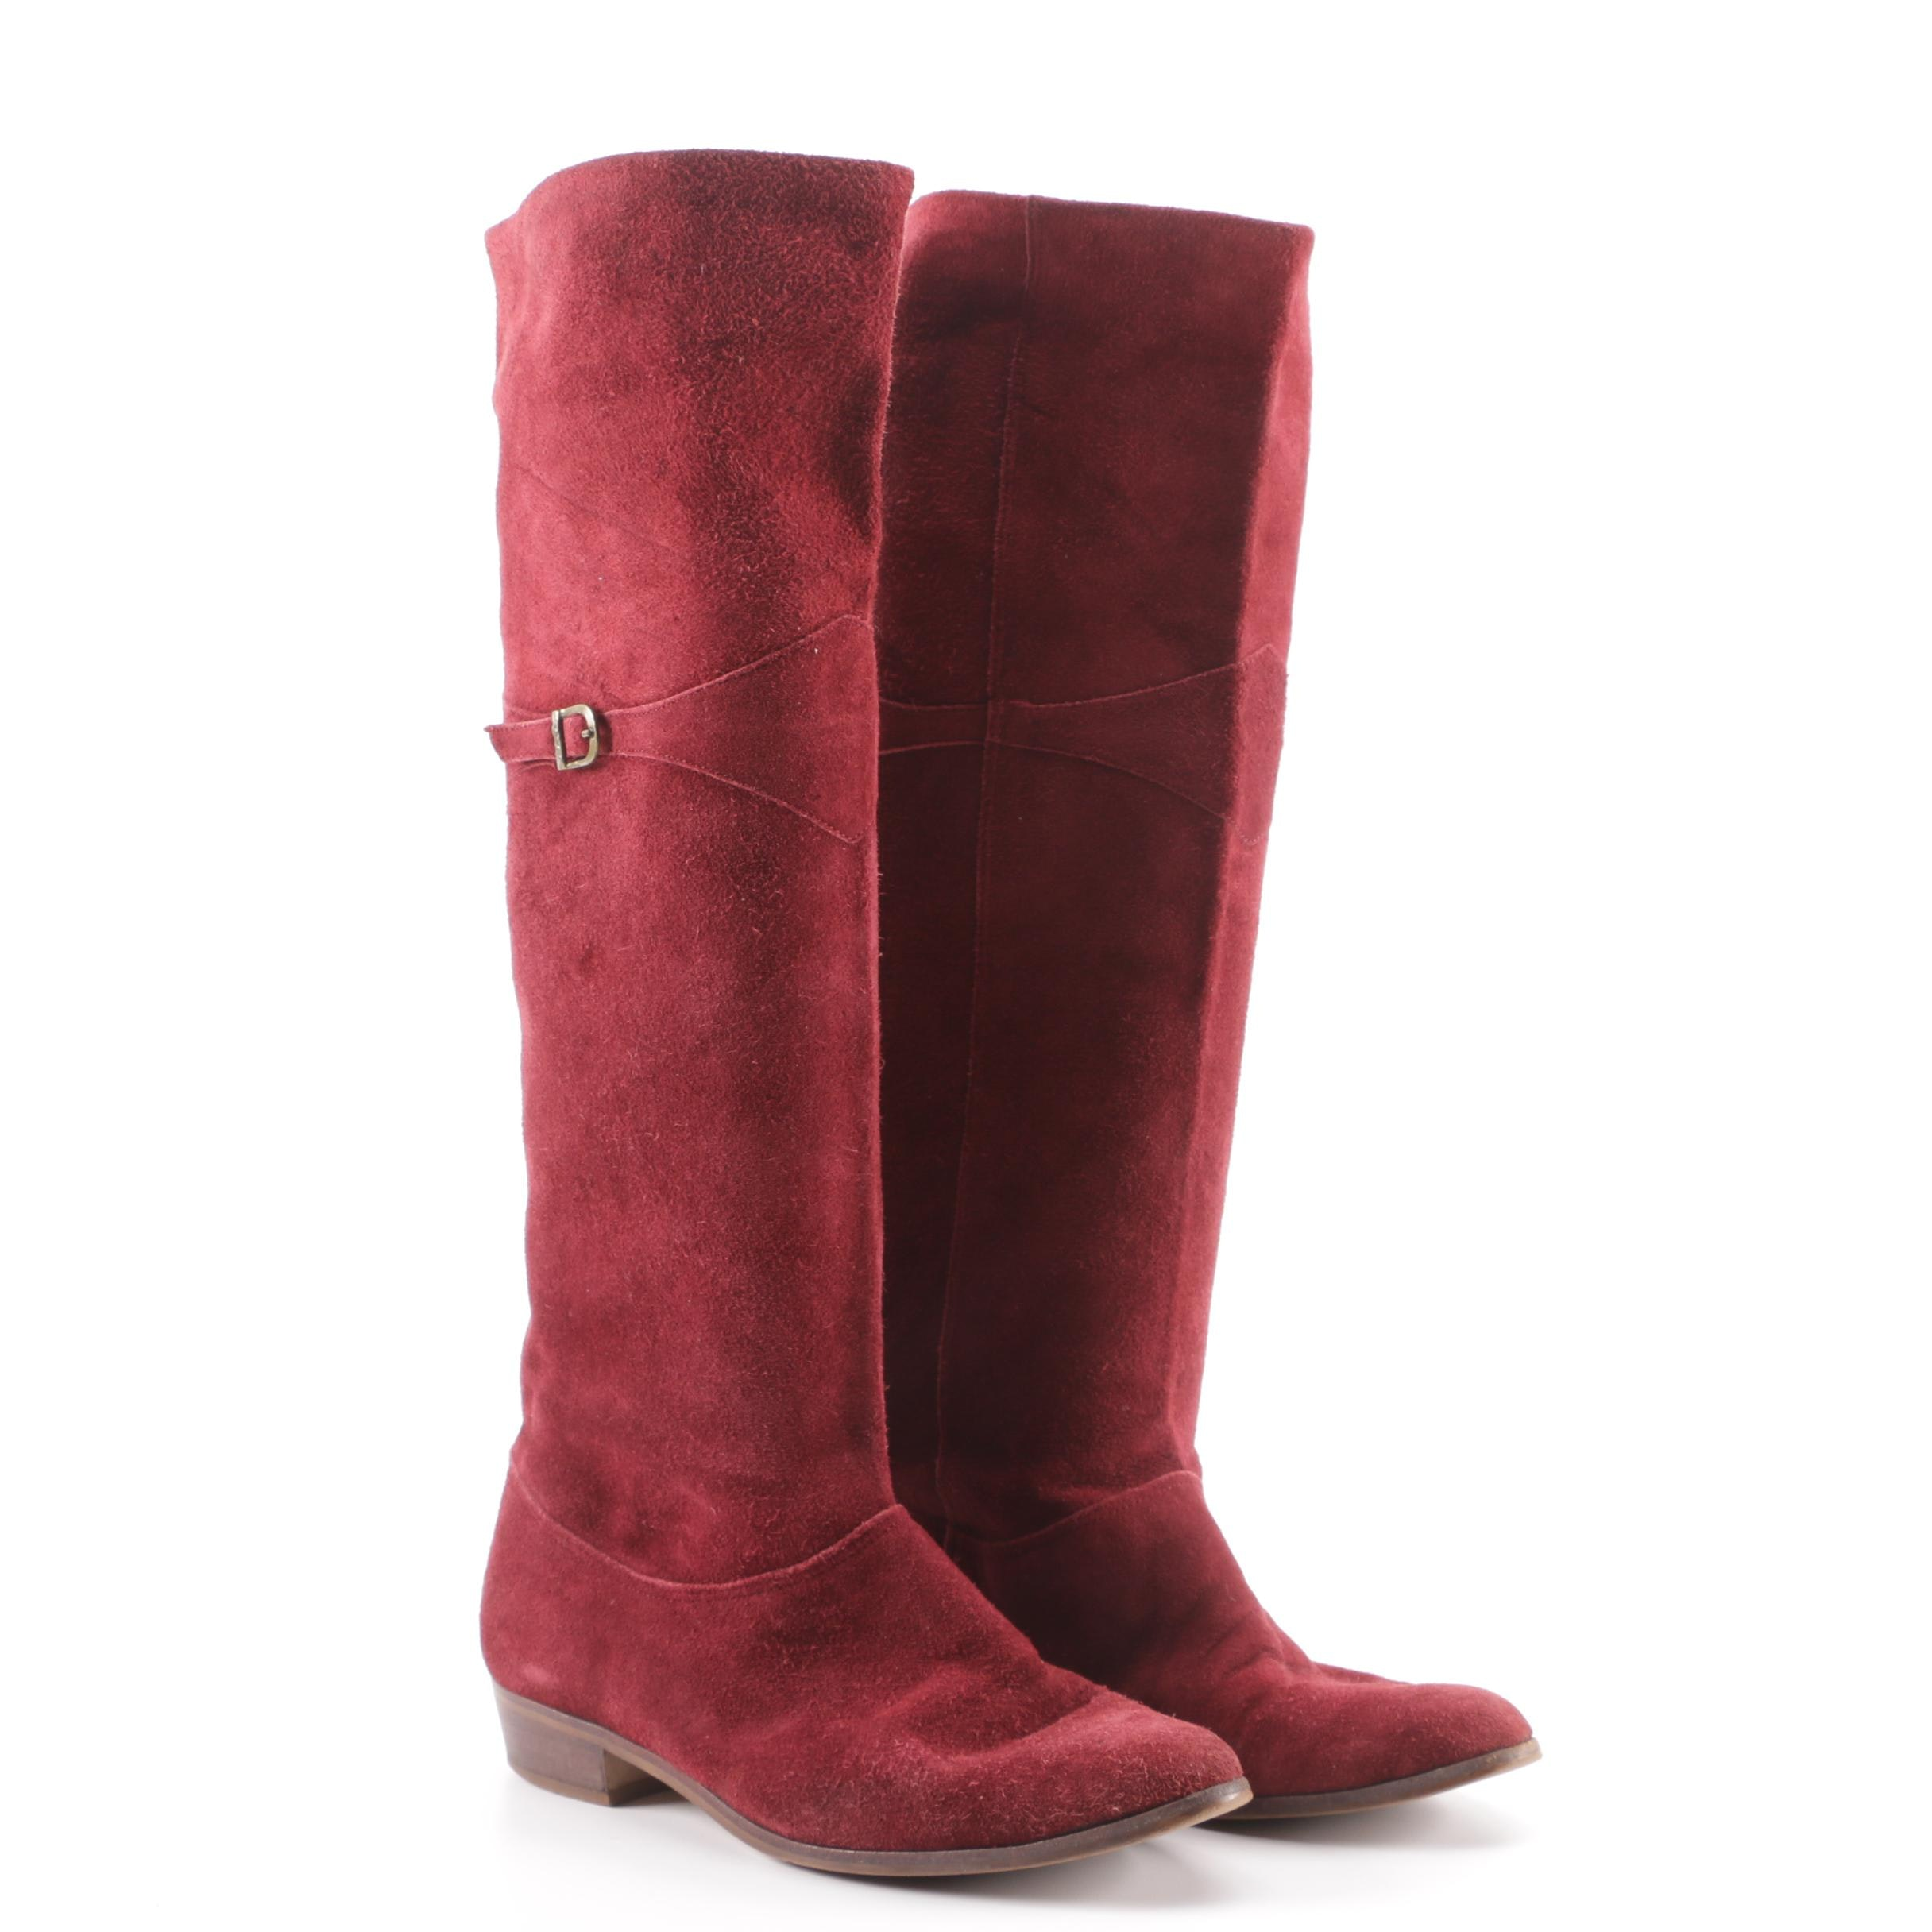 9 West Burgundy Suede Tall Boots